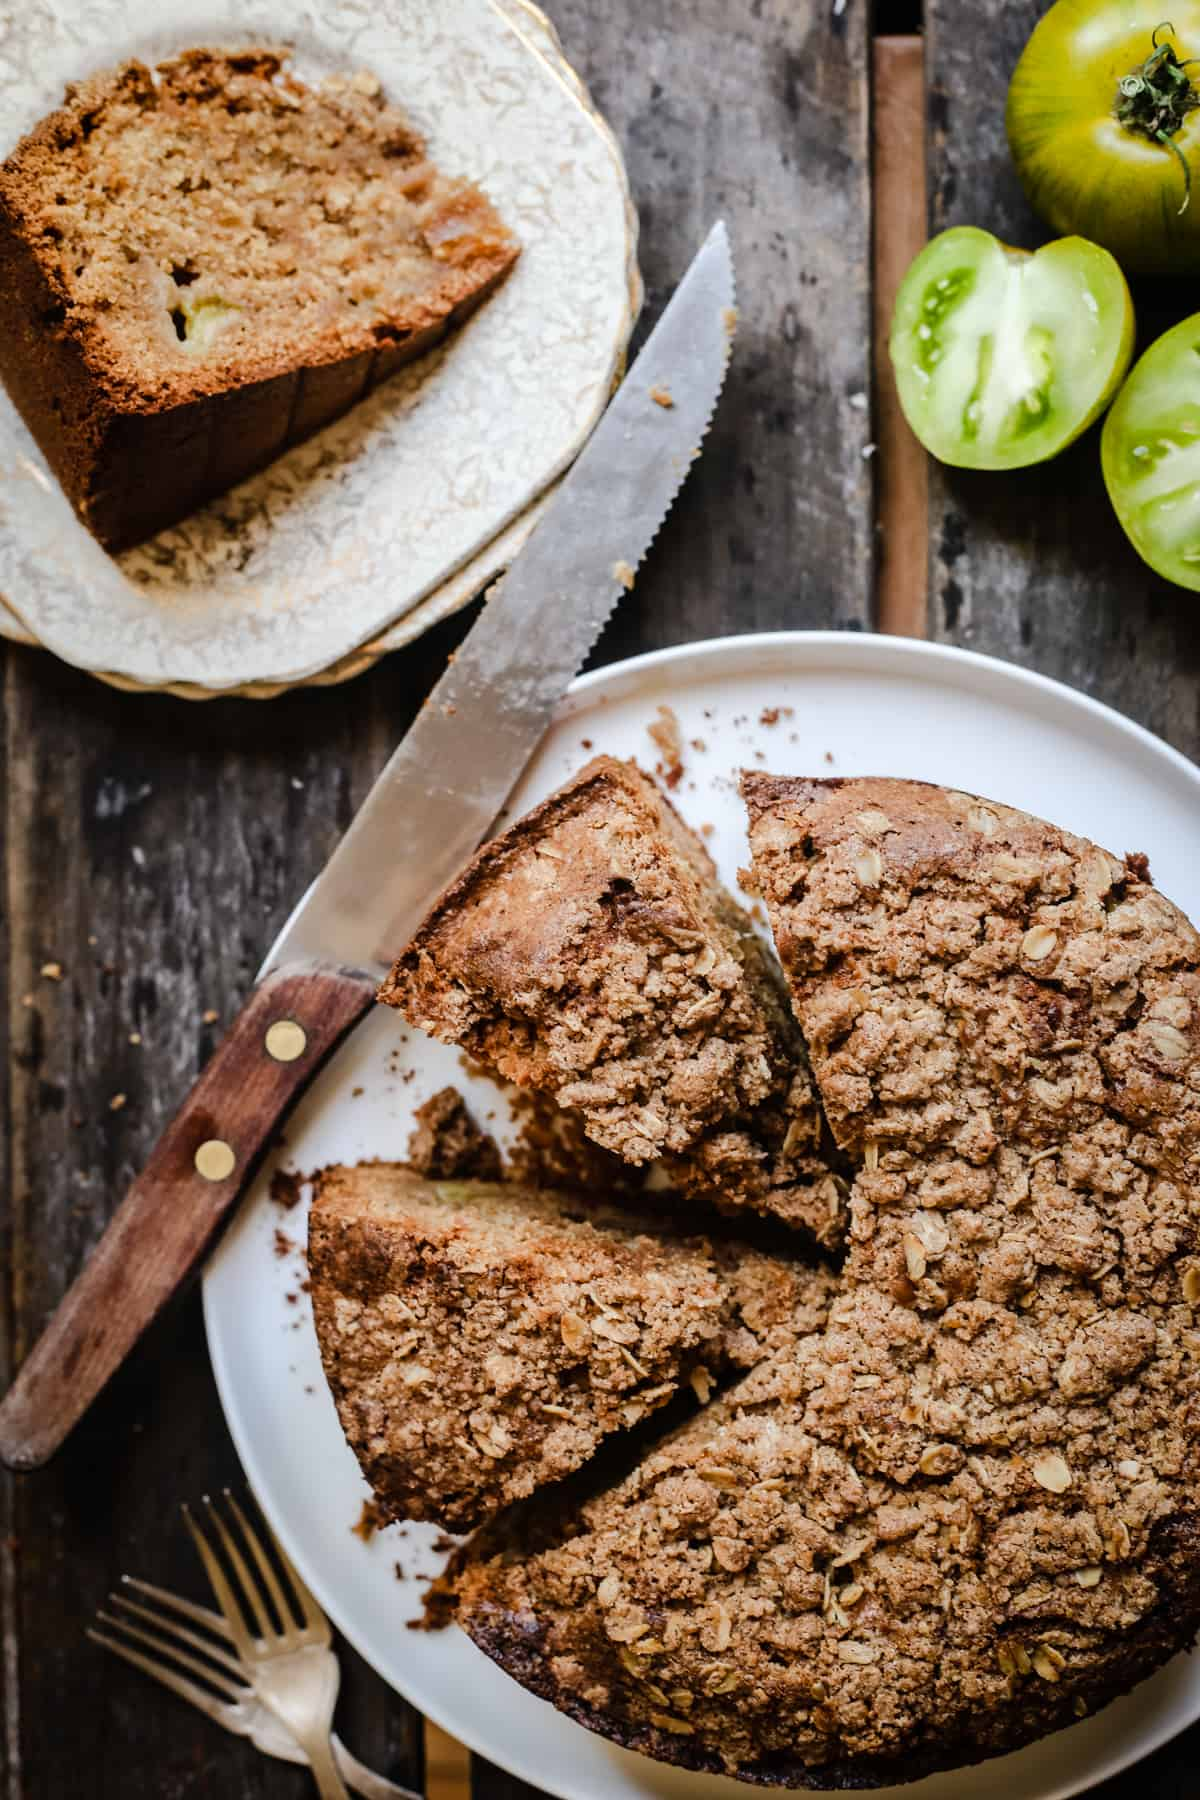 overhead shot of Green Tomato and Stem Ginger Cake with Streusel Topping {gluten-free} on a plate with green tomatoes next to it